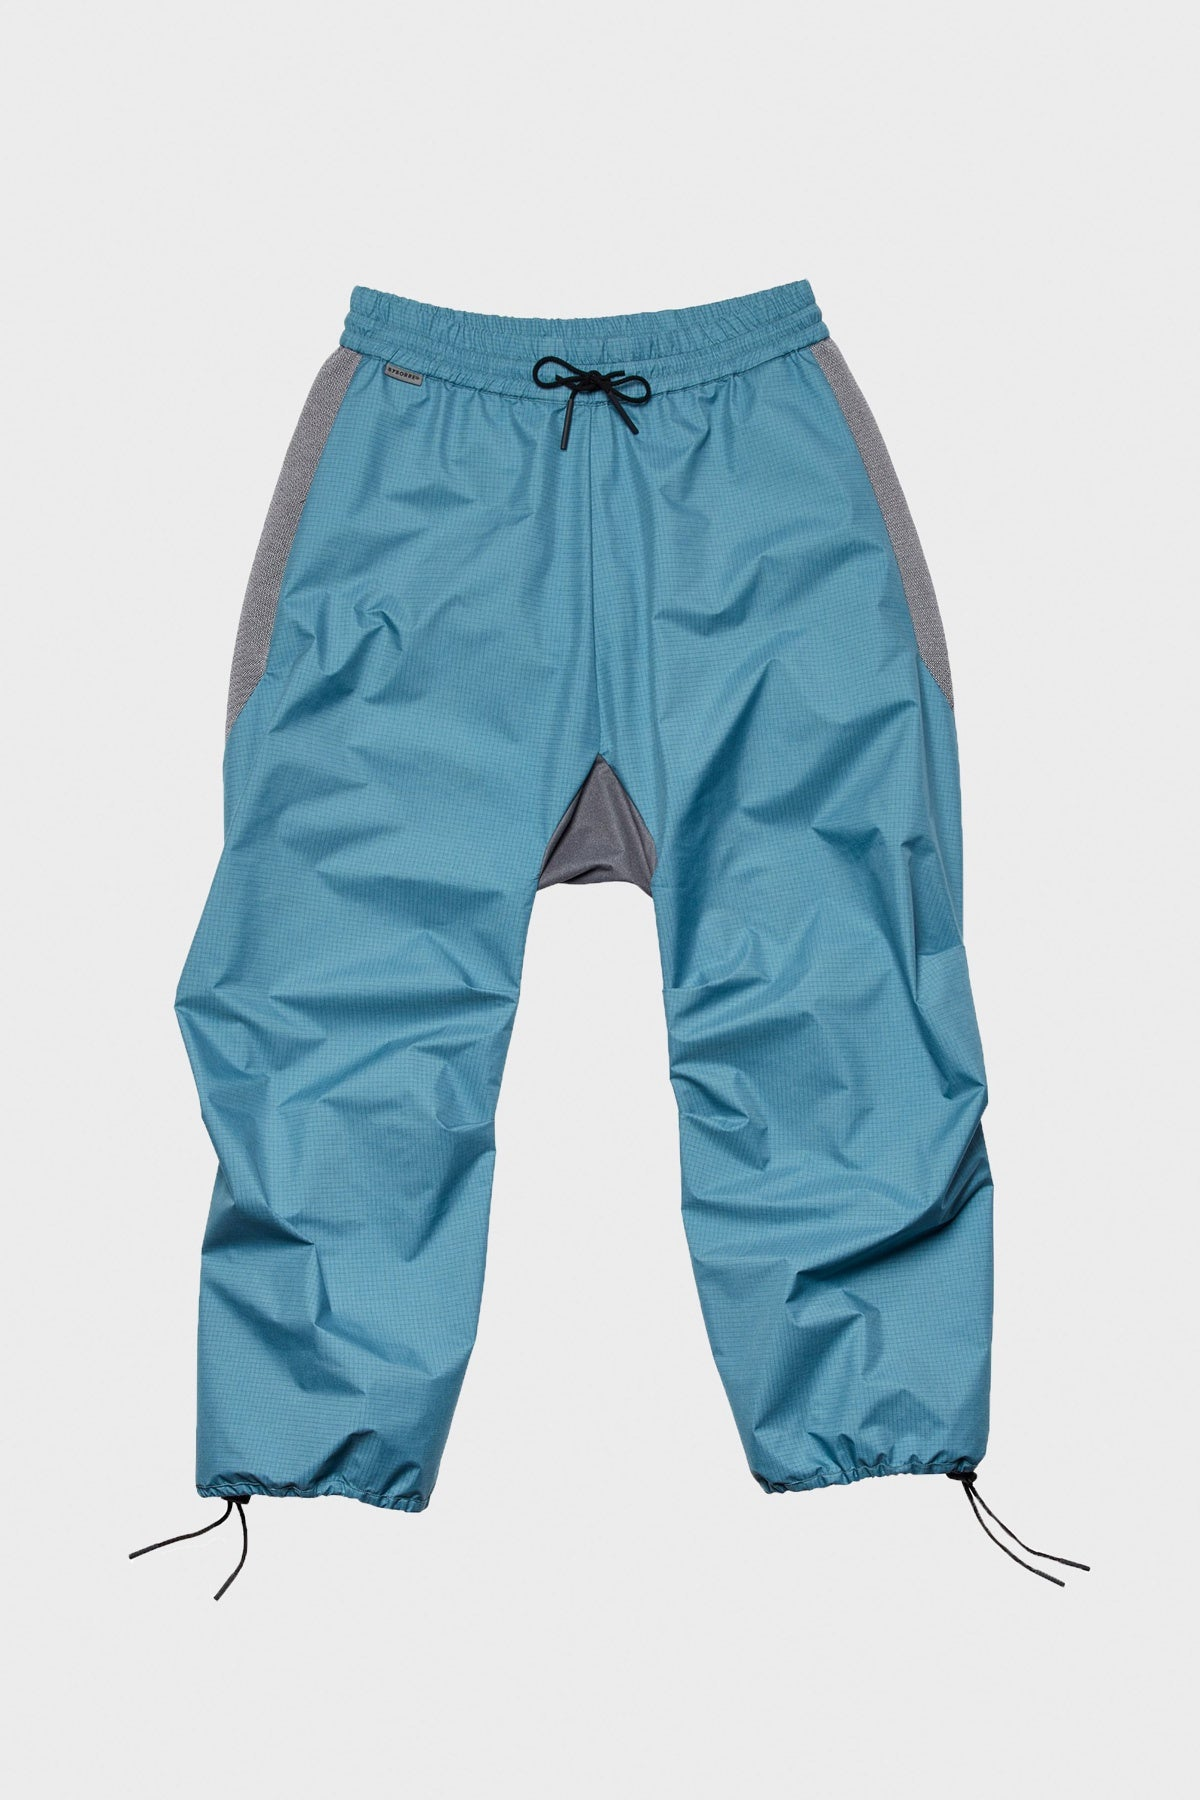 BYBORRE - Weight Map Field Cropped Pants - MultiColor - Canoe Club